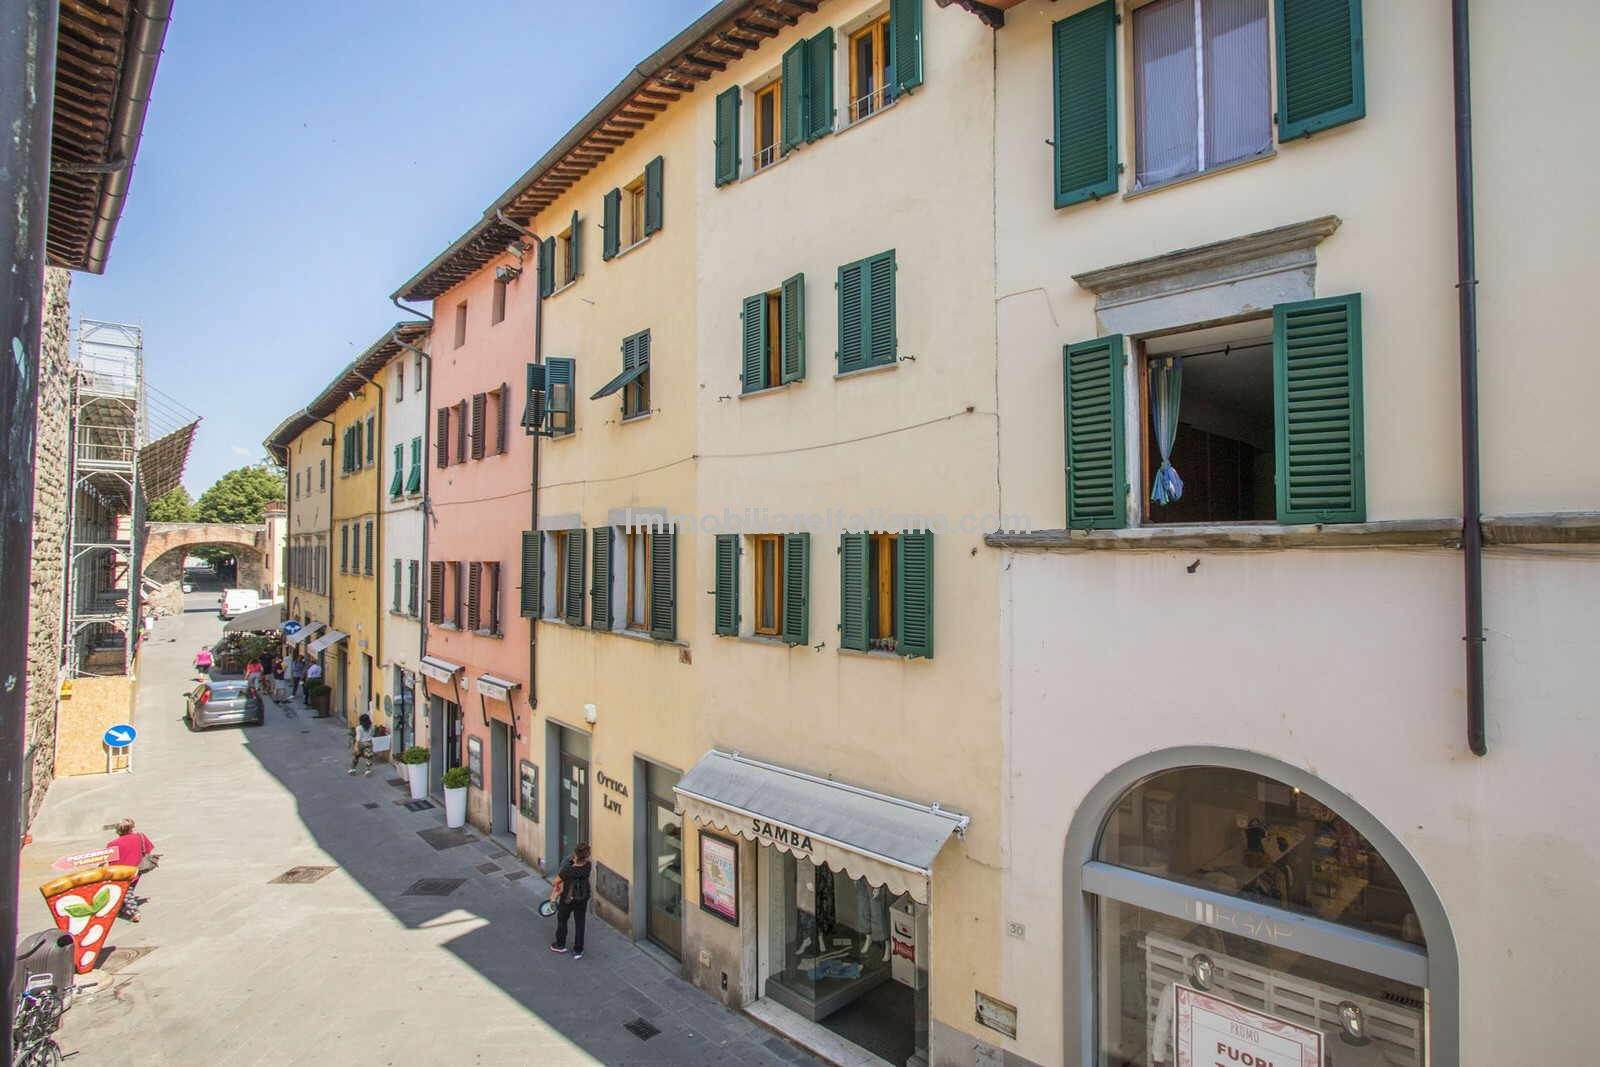 Street view of Townhouse home in Sansepolcro Tuscany